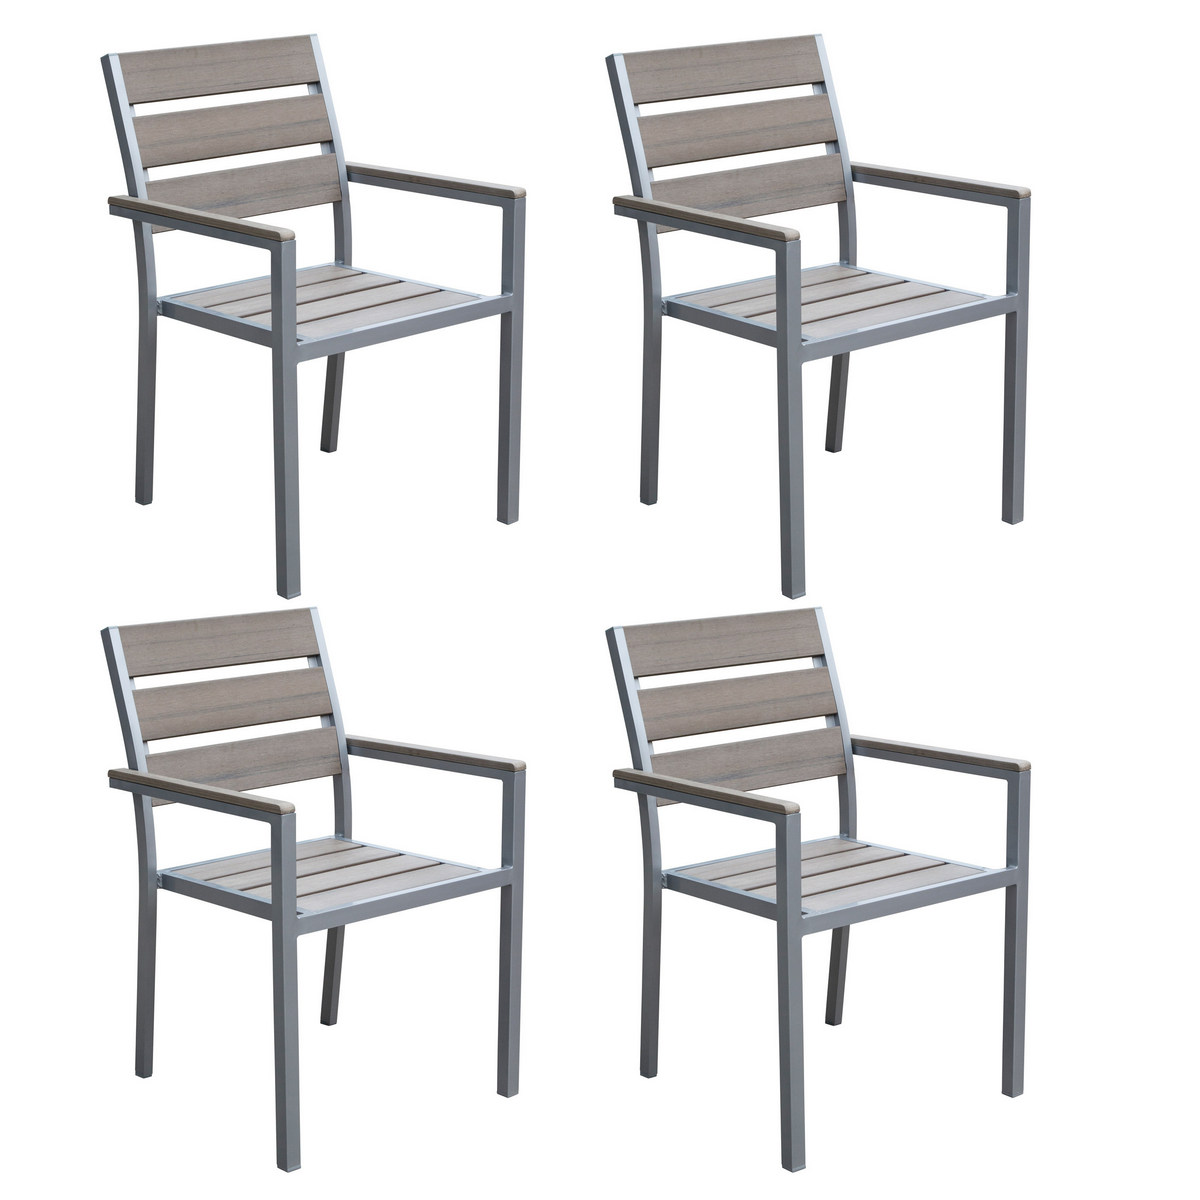 Sun Bleached Outdoor Dining Chairs